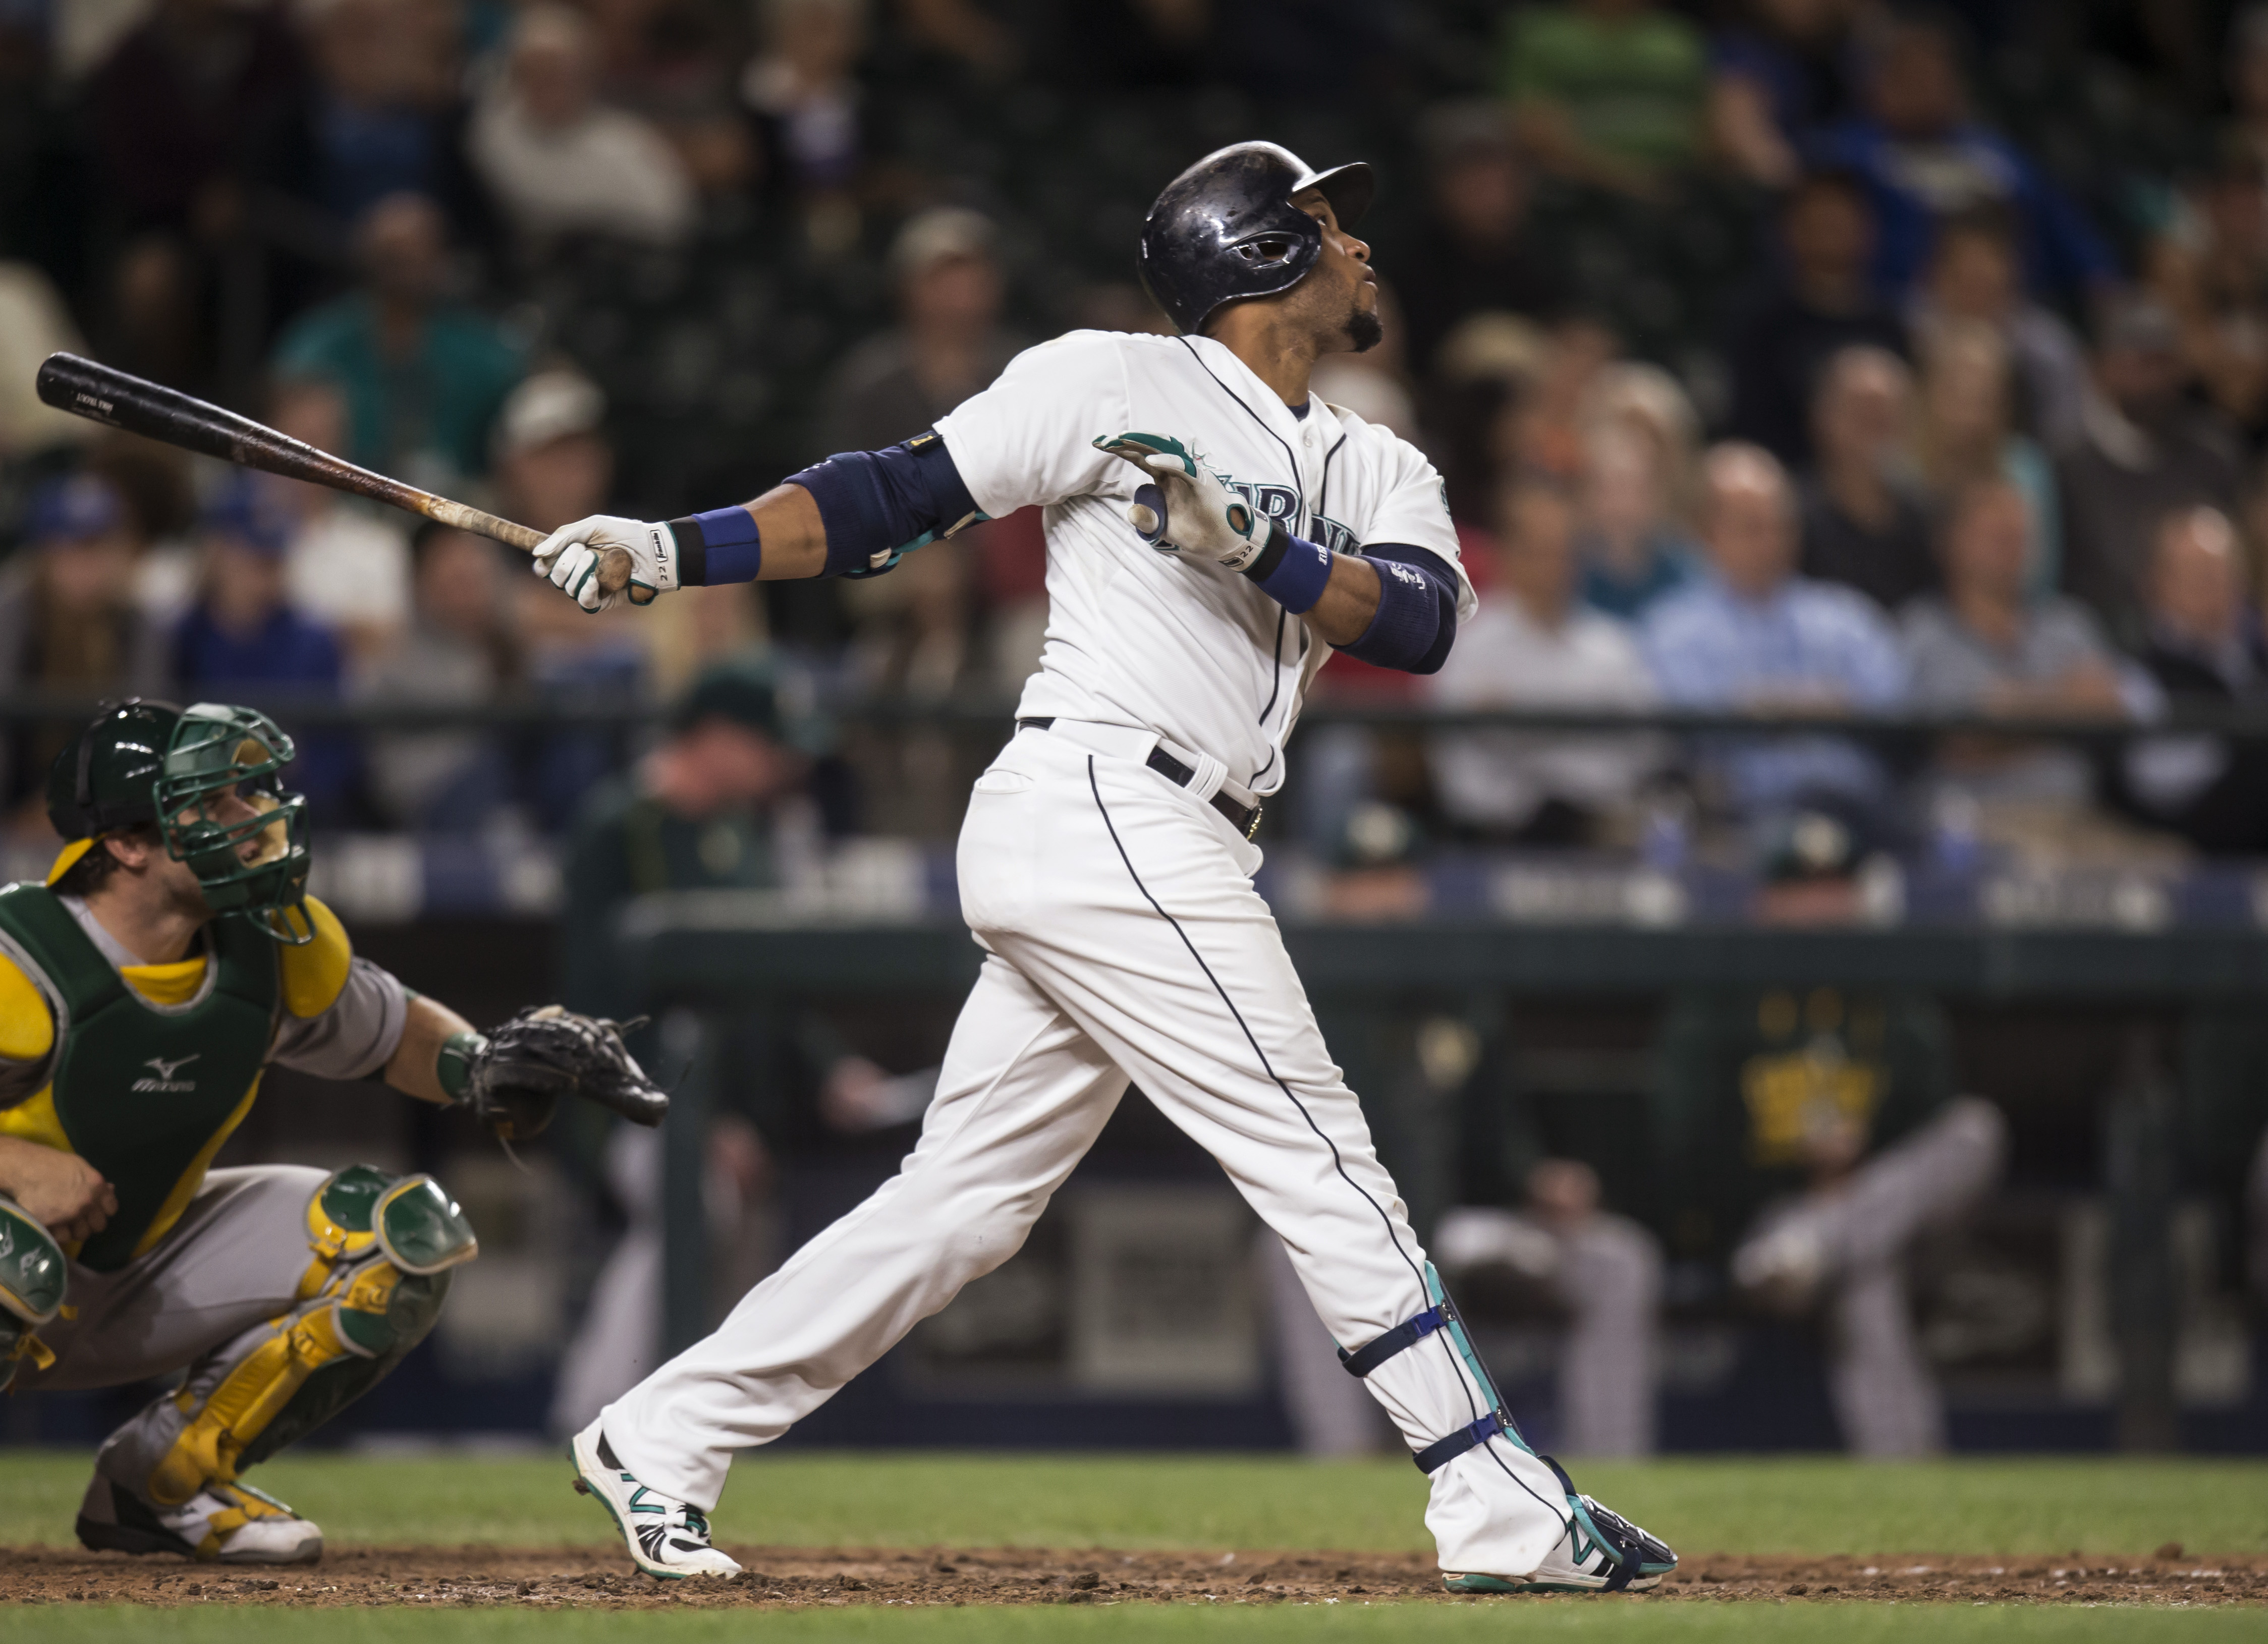 Seattle Mariners' Robinson Cano hits a double during the seventh inning of a baseball game against the Oakland Athletics, Tuesday, Aug. 25, 2015, in Seattle. (AP Photo/Stephen Brashear)